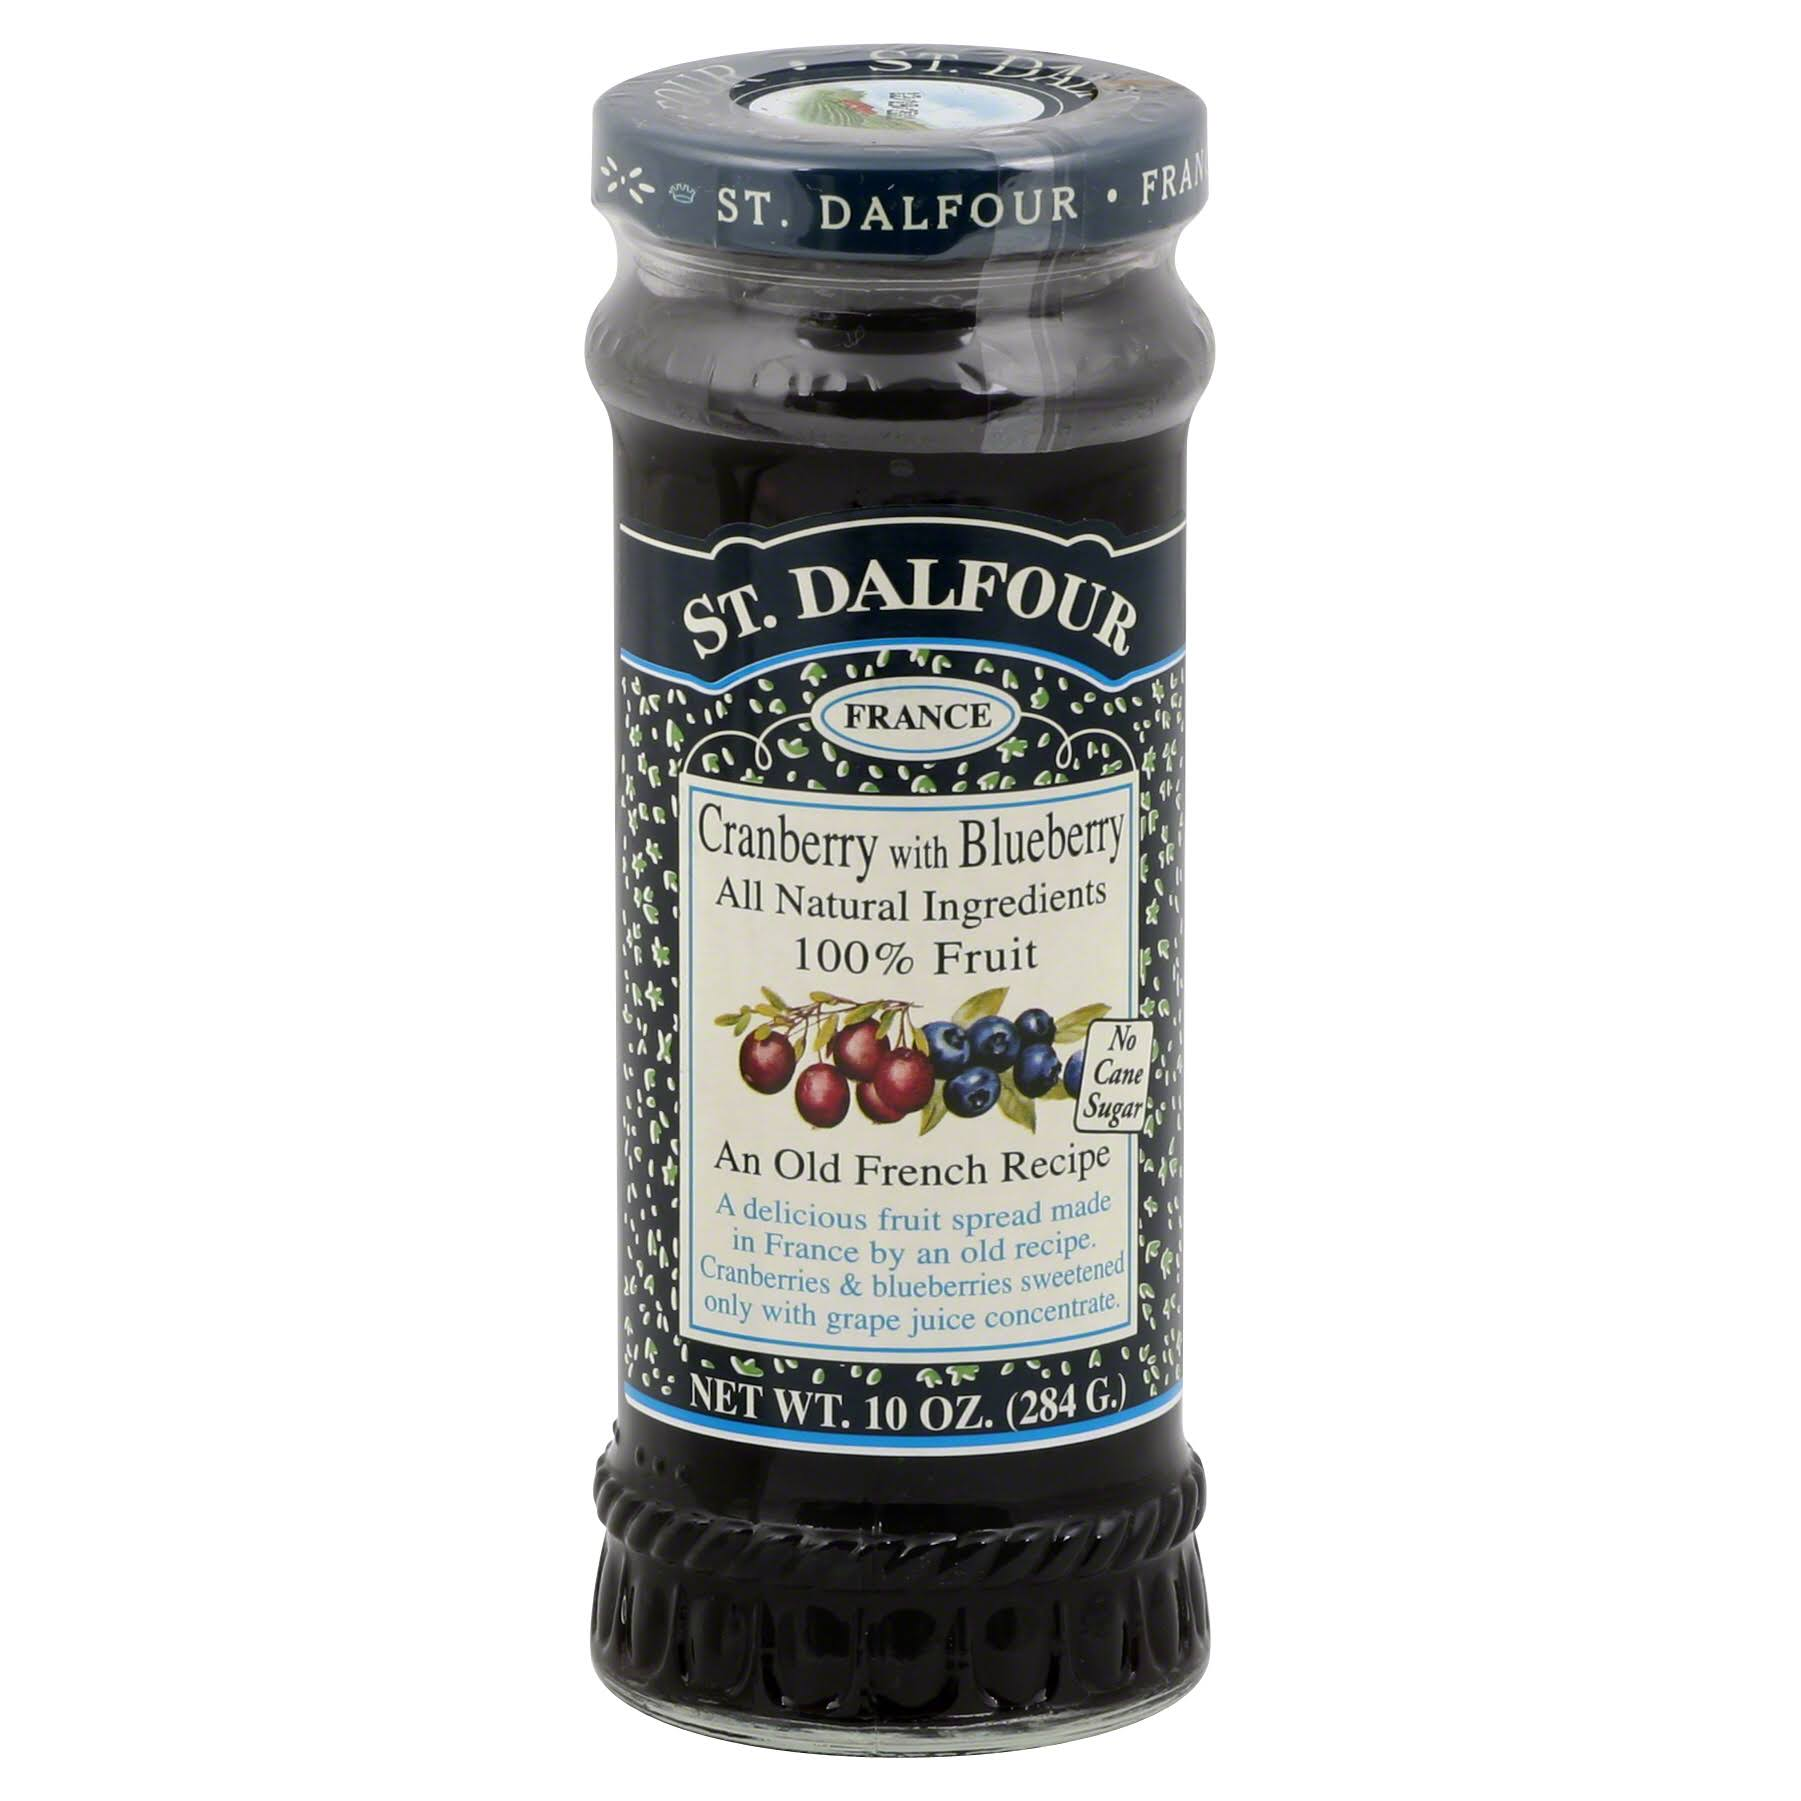 St. Dalfour, Cranberry with Blueberry Fruit Spread, 10 oz (284 g)